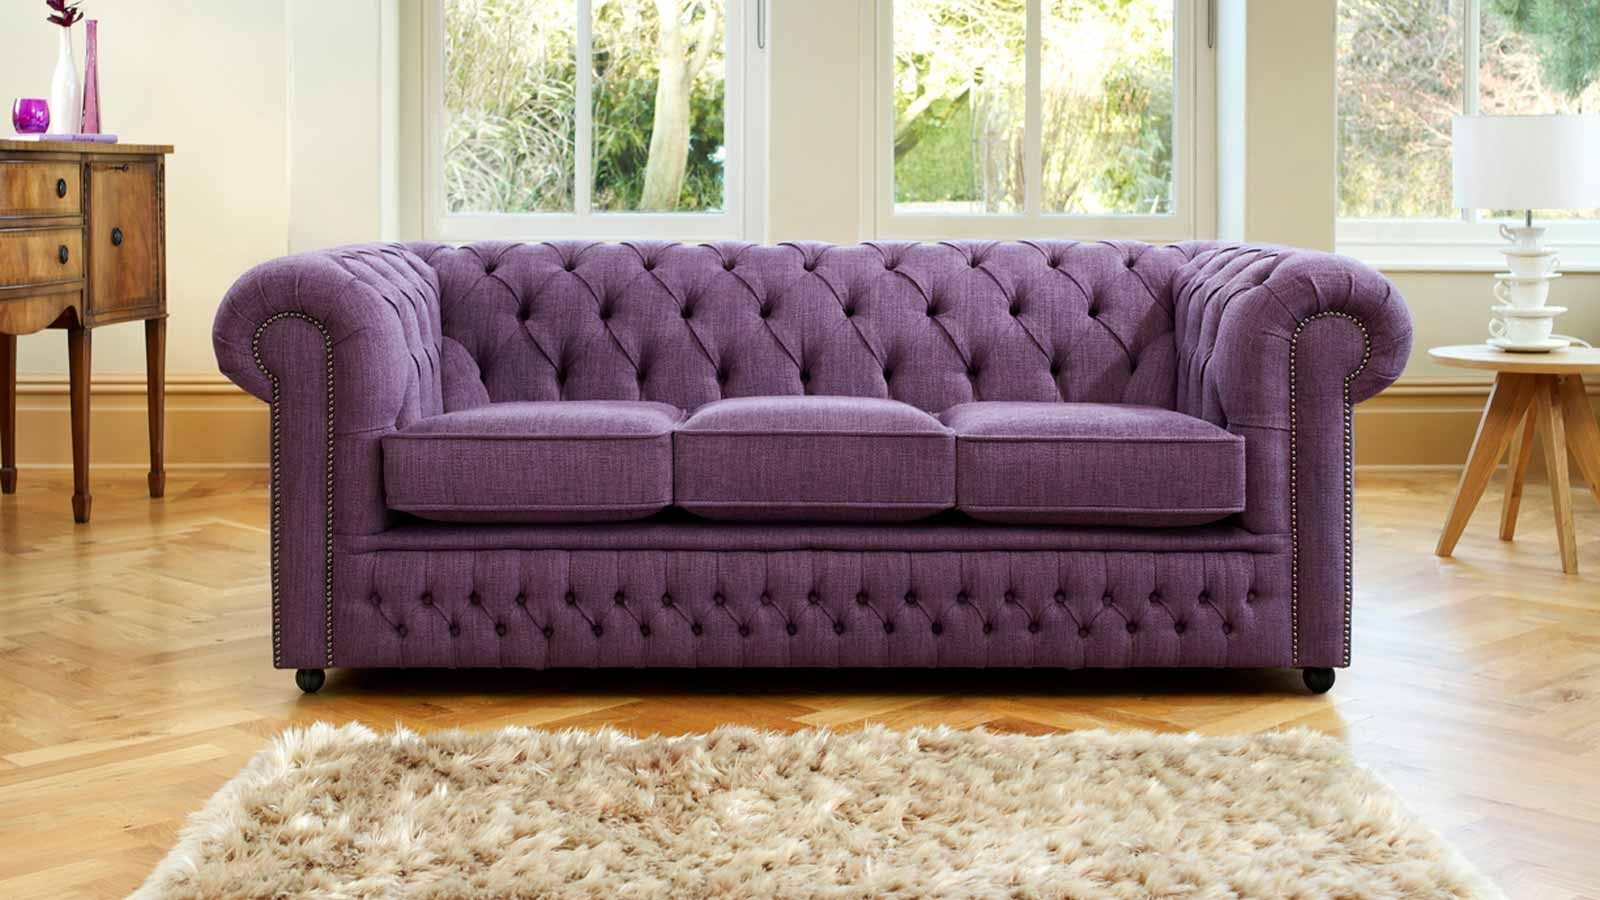 Chesterfield Sofa Riess Ambiente 20 Reasons To Love Chesterfield Sofas Chesterfield Sofa